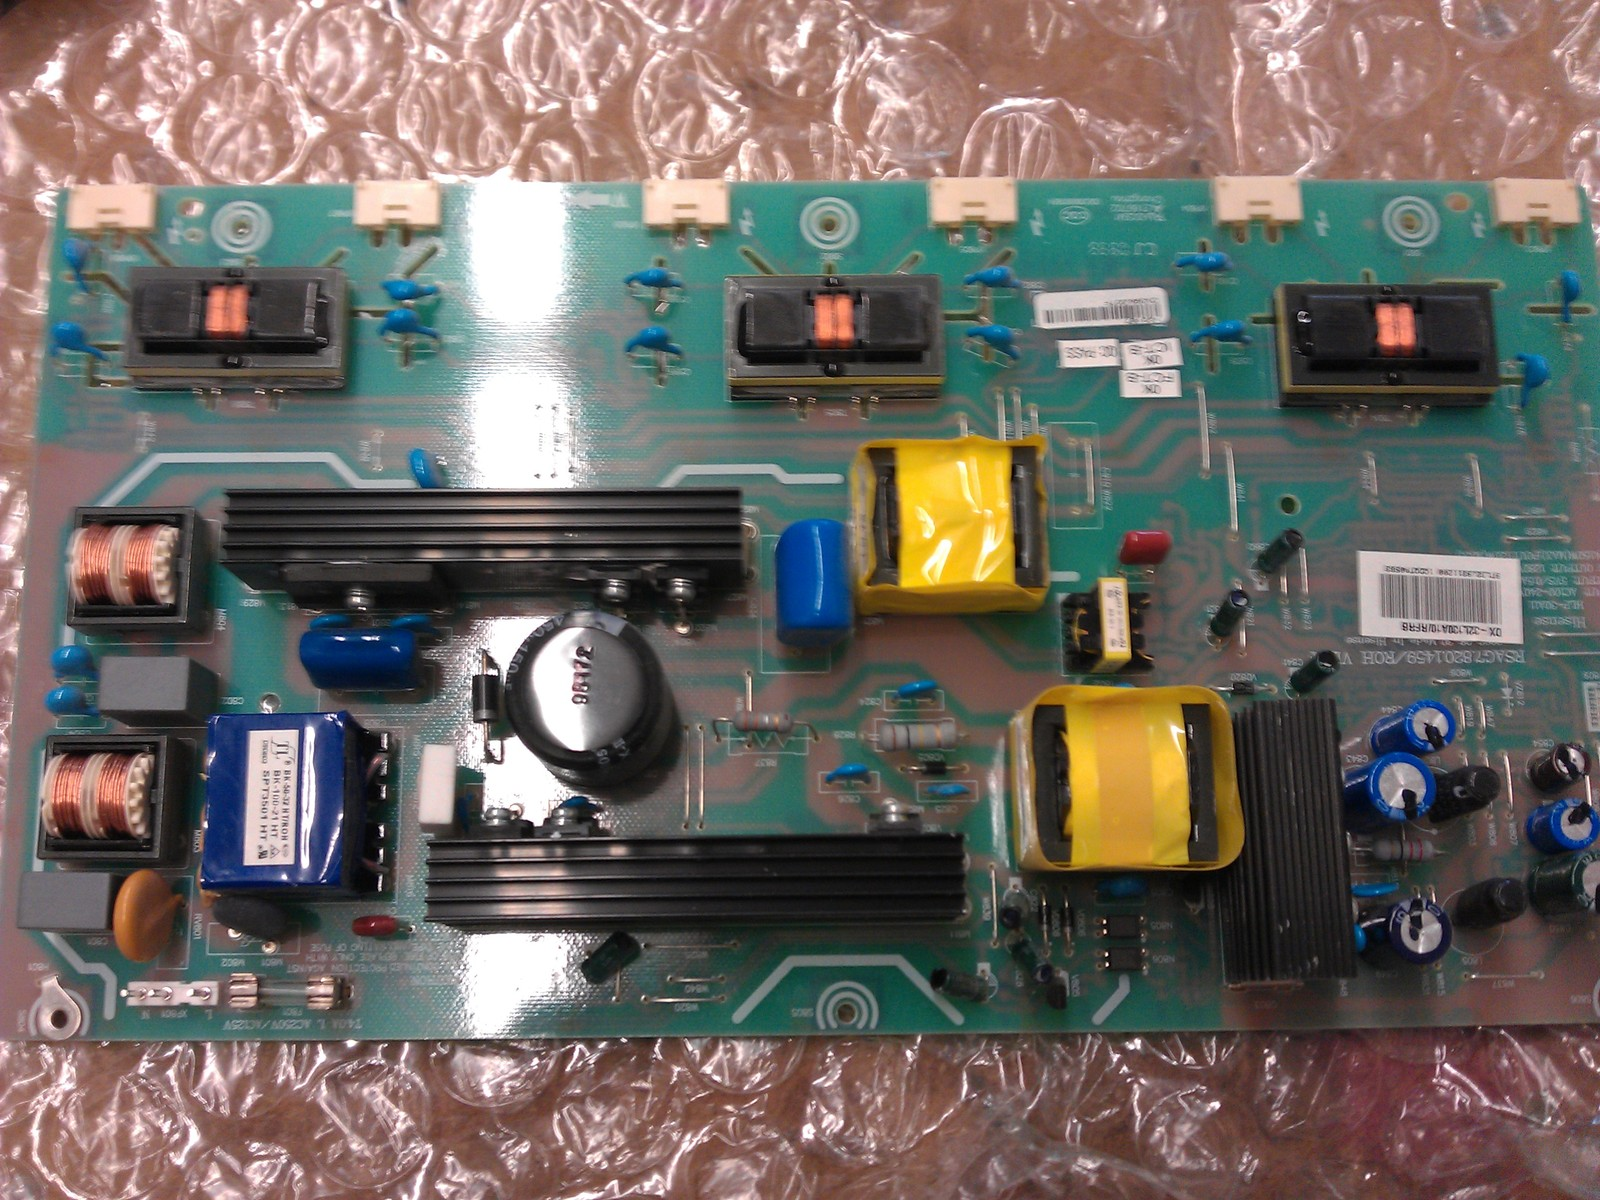 123187 Power Supply Board  from Dynex DX-32L130A10 LCD TV